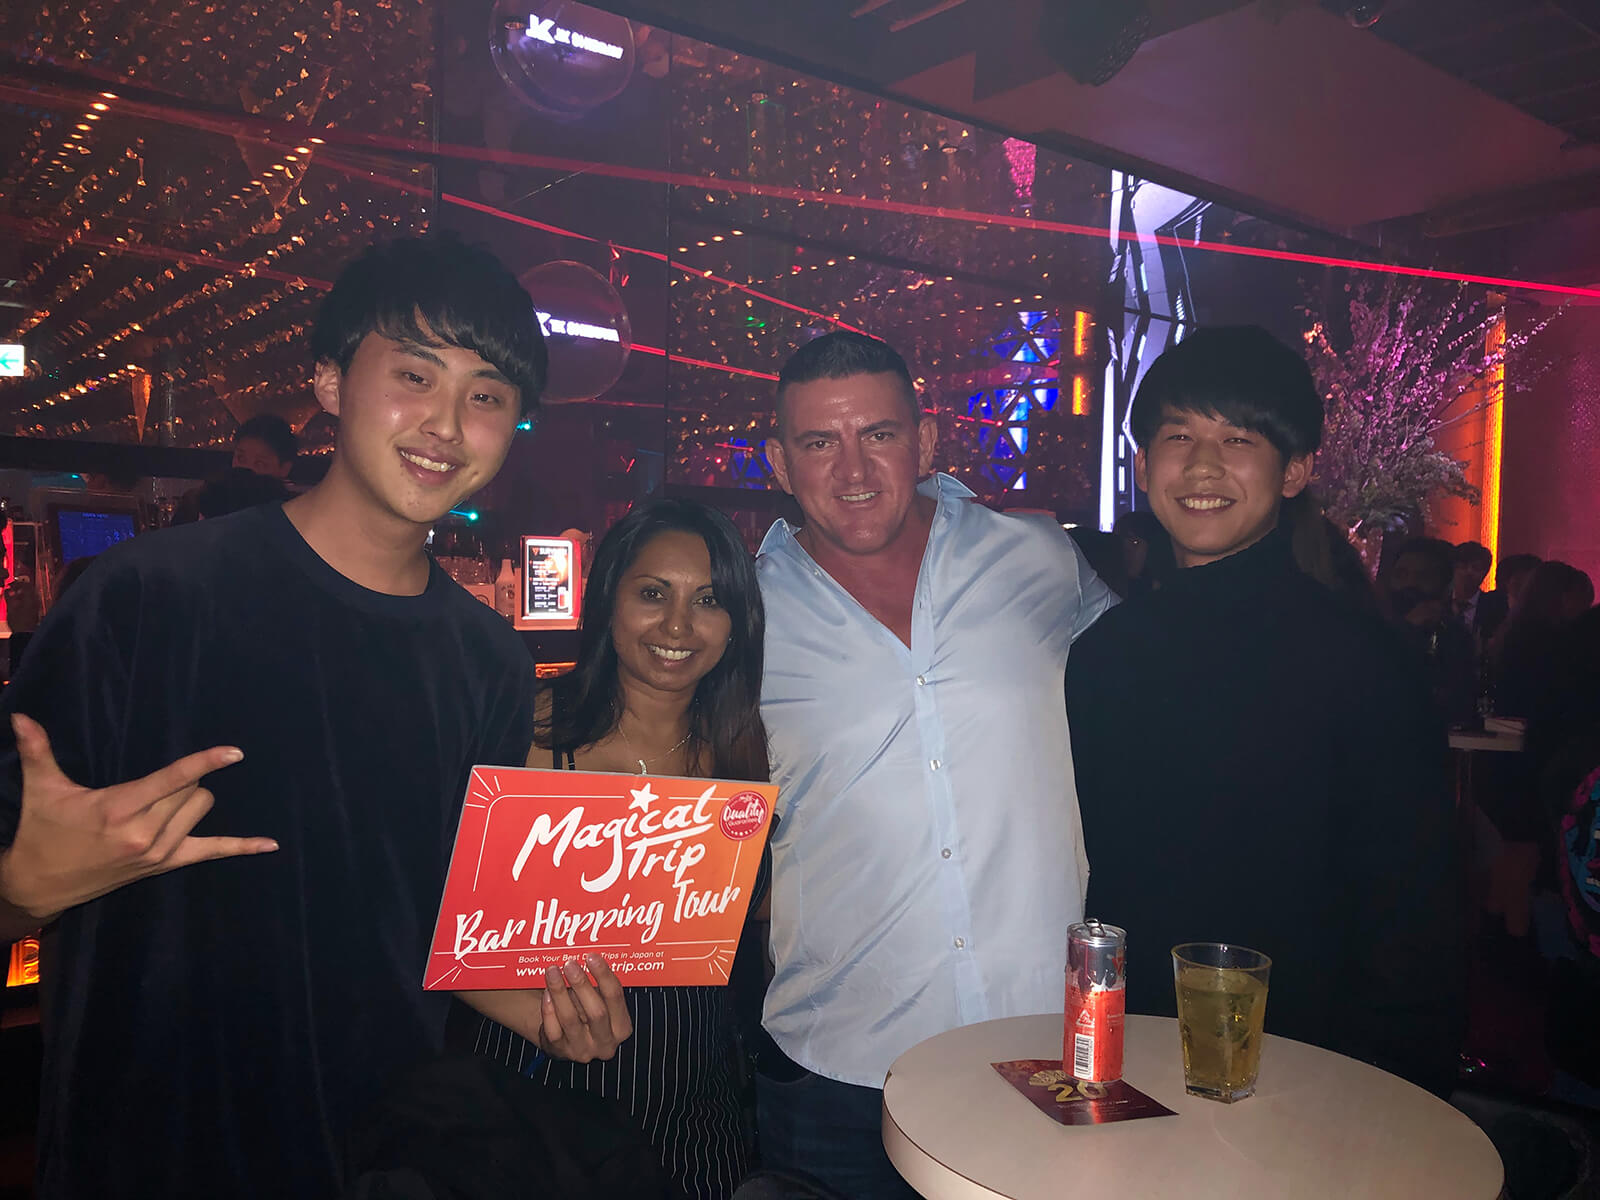 Shibuya nightclub tour with Magical Trip